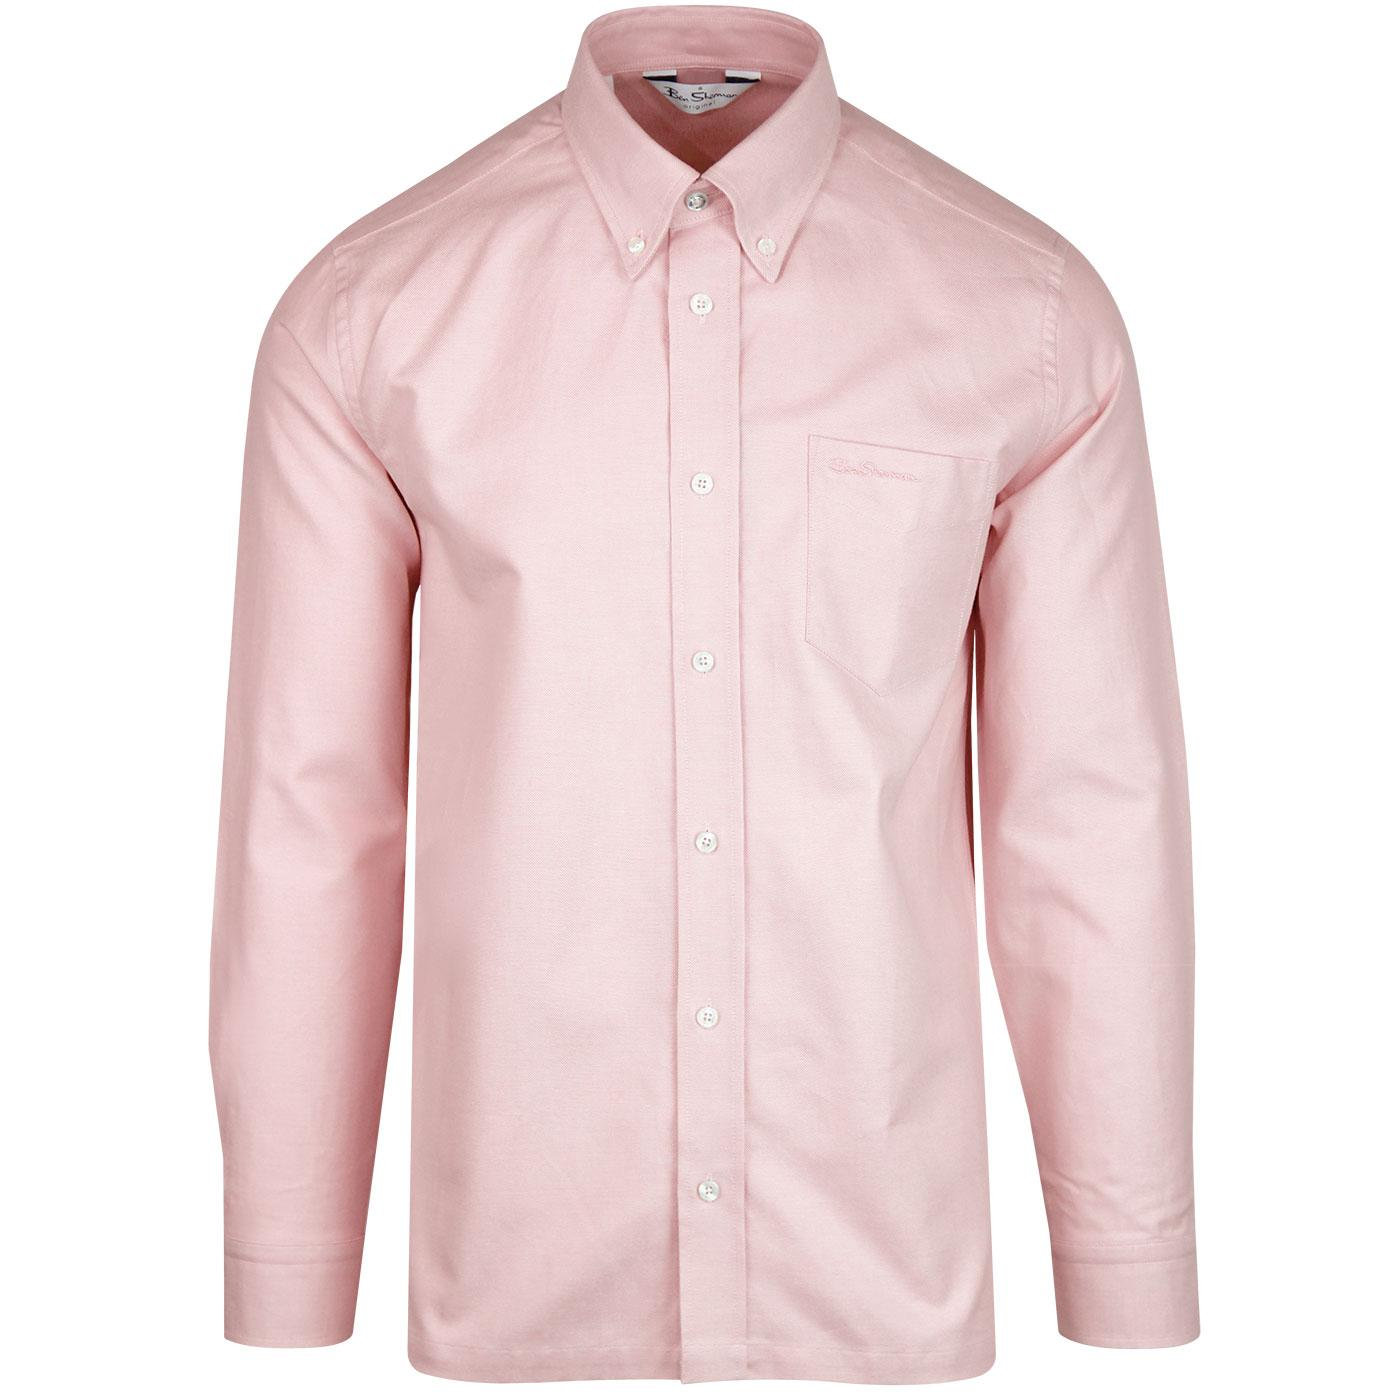 BEN SHERMAN Archive Benny L/S Mod Shirt LIGHT PINK